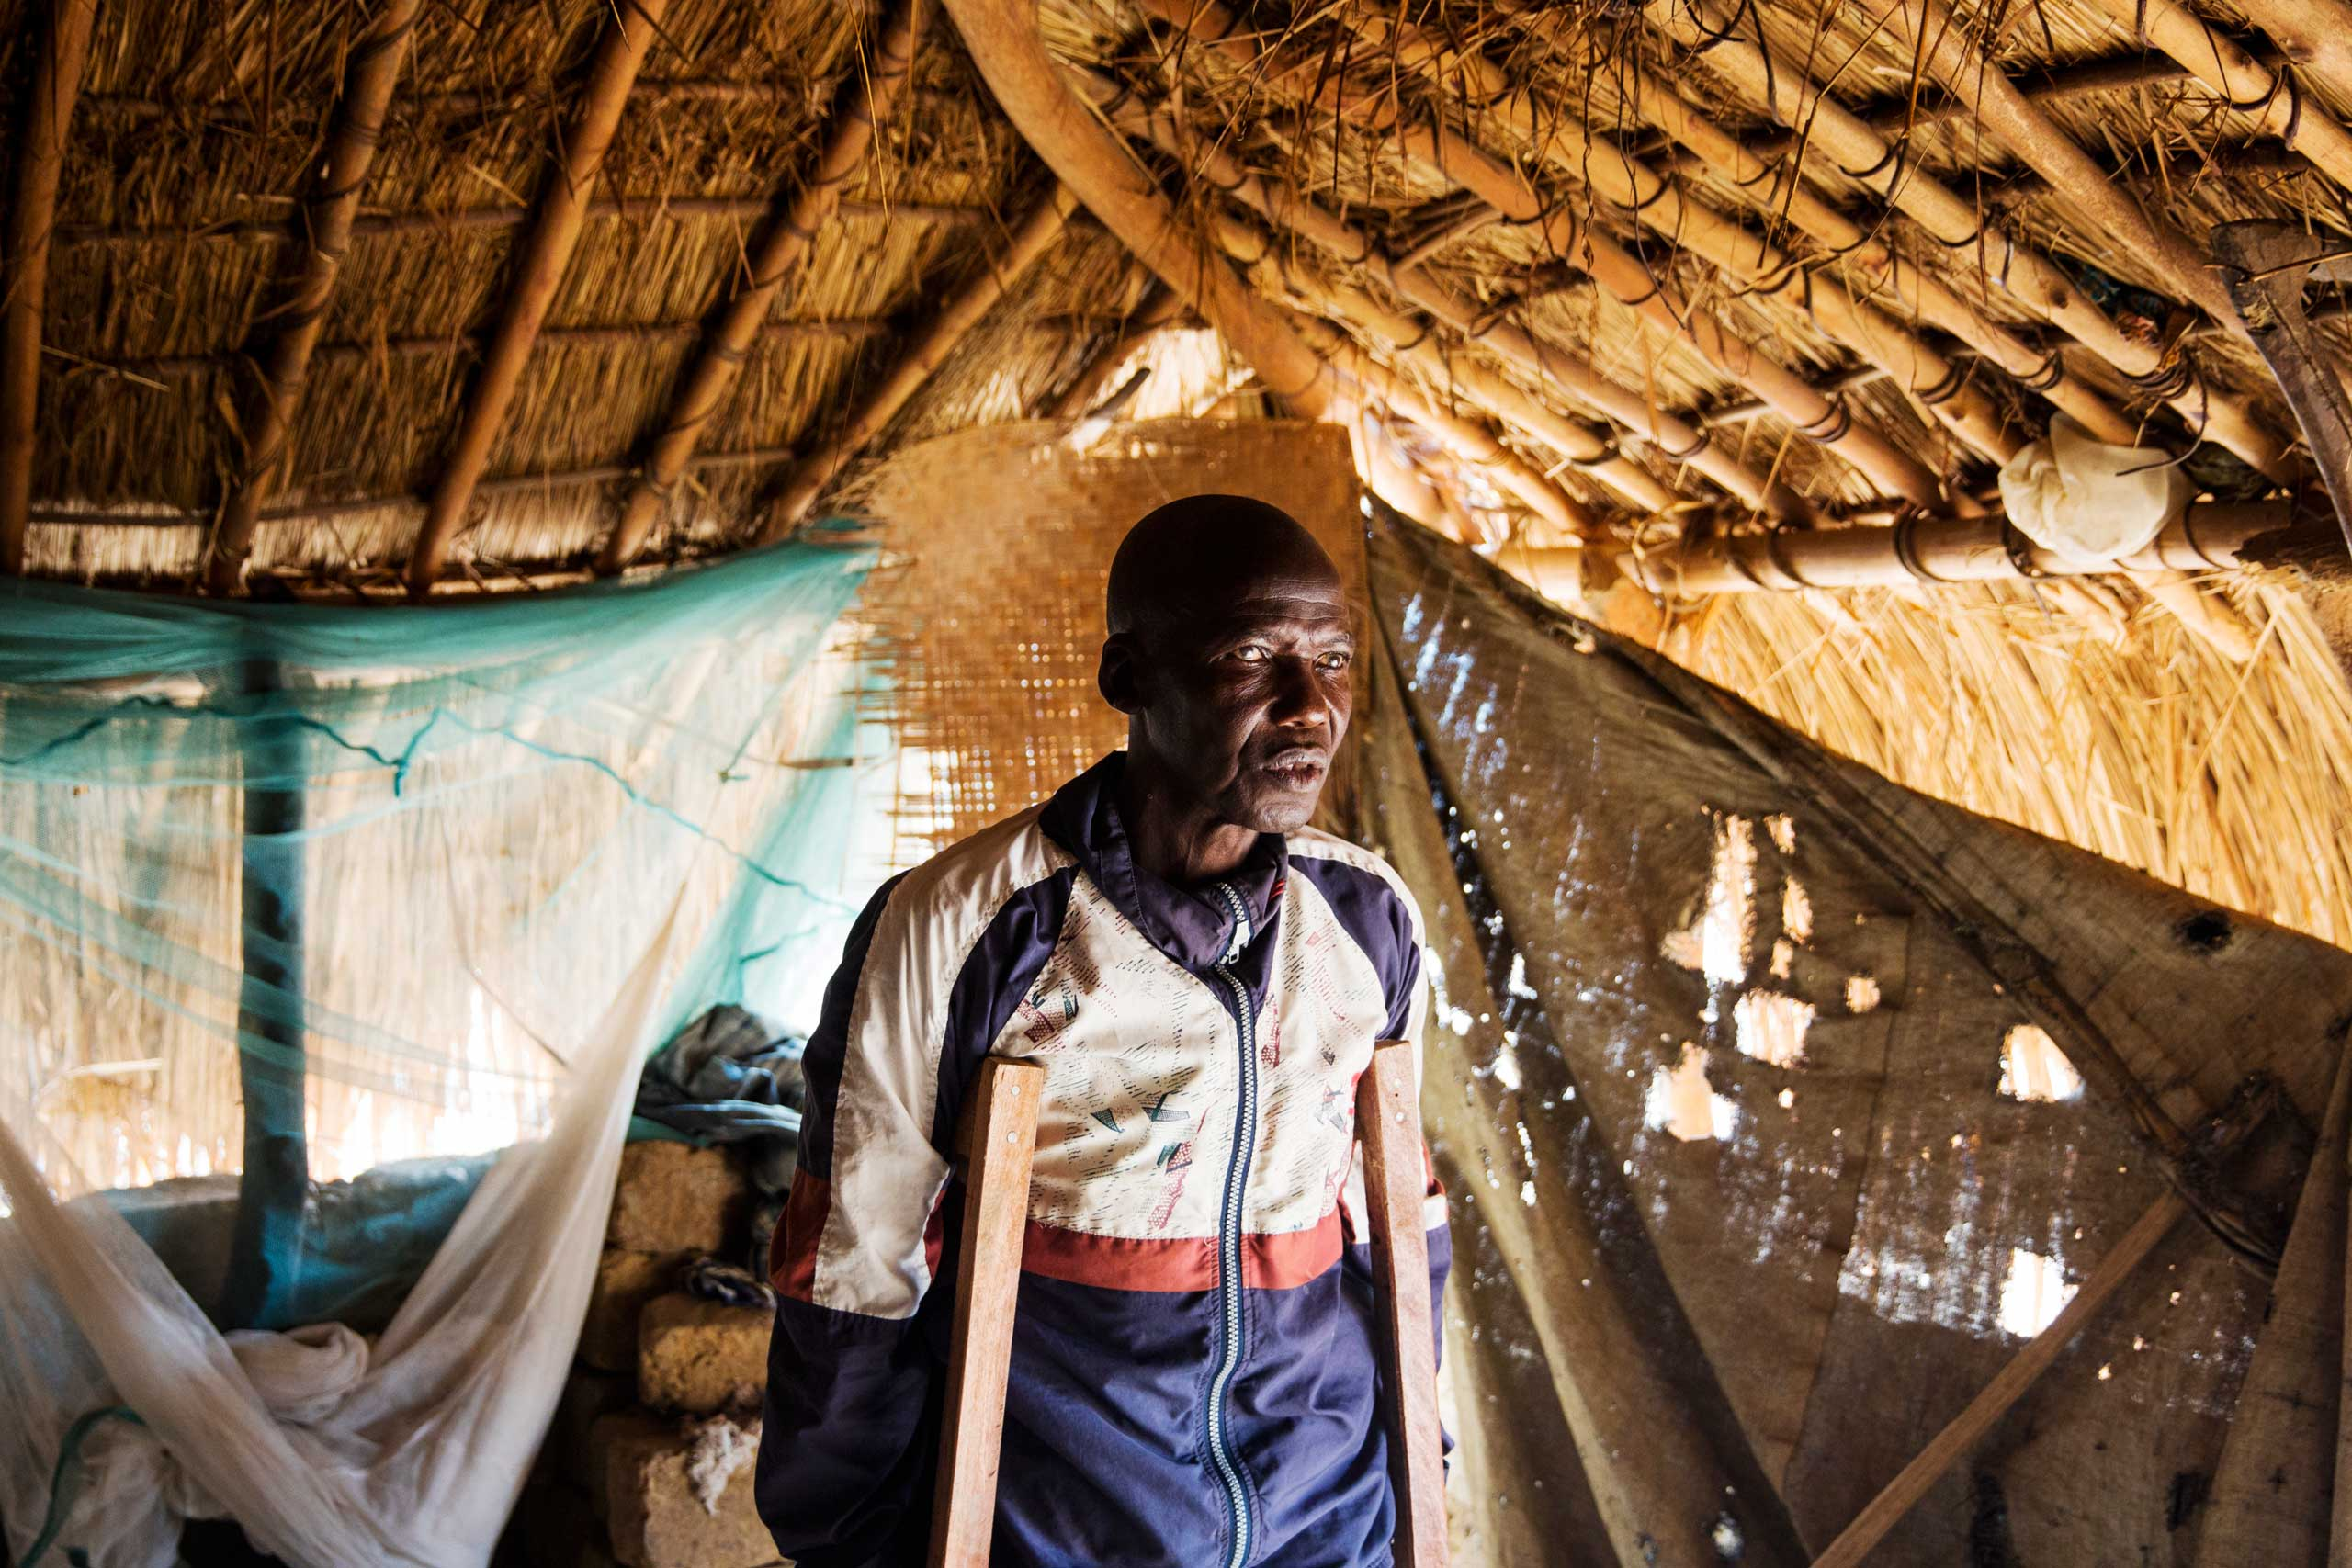 A blind fisherman in Bankoudou, a village along the Oubangui river. Many people, especially in fisherman families, suffer from blindness caused by a parasite carried by flies.